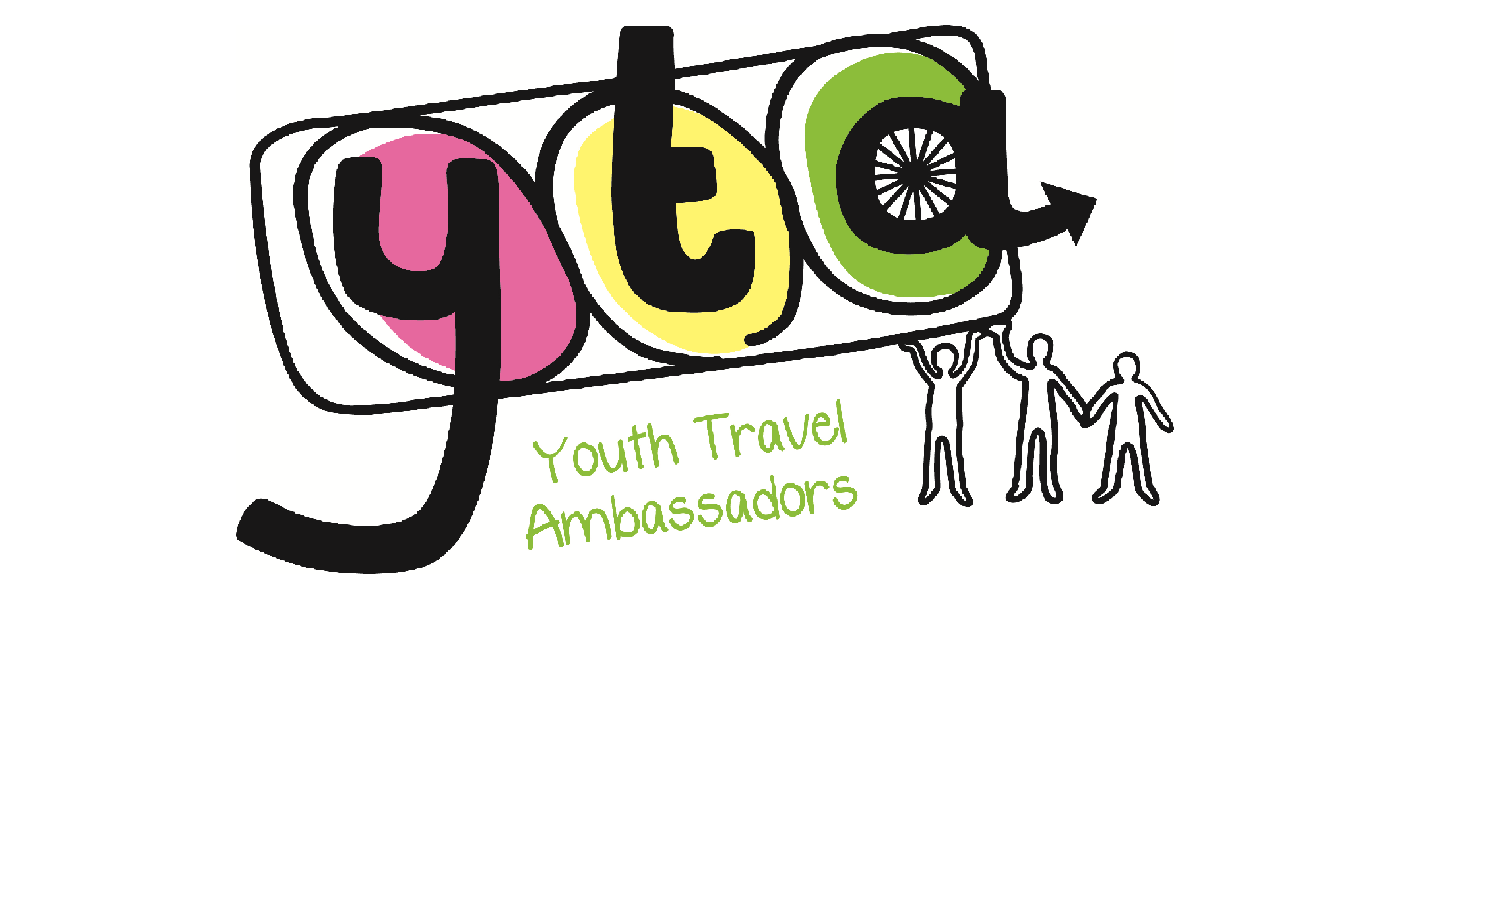 Youth Travel Ambassadors (YTA)